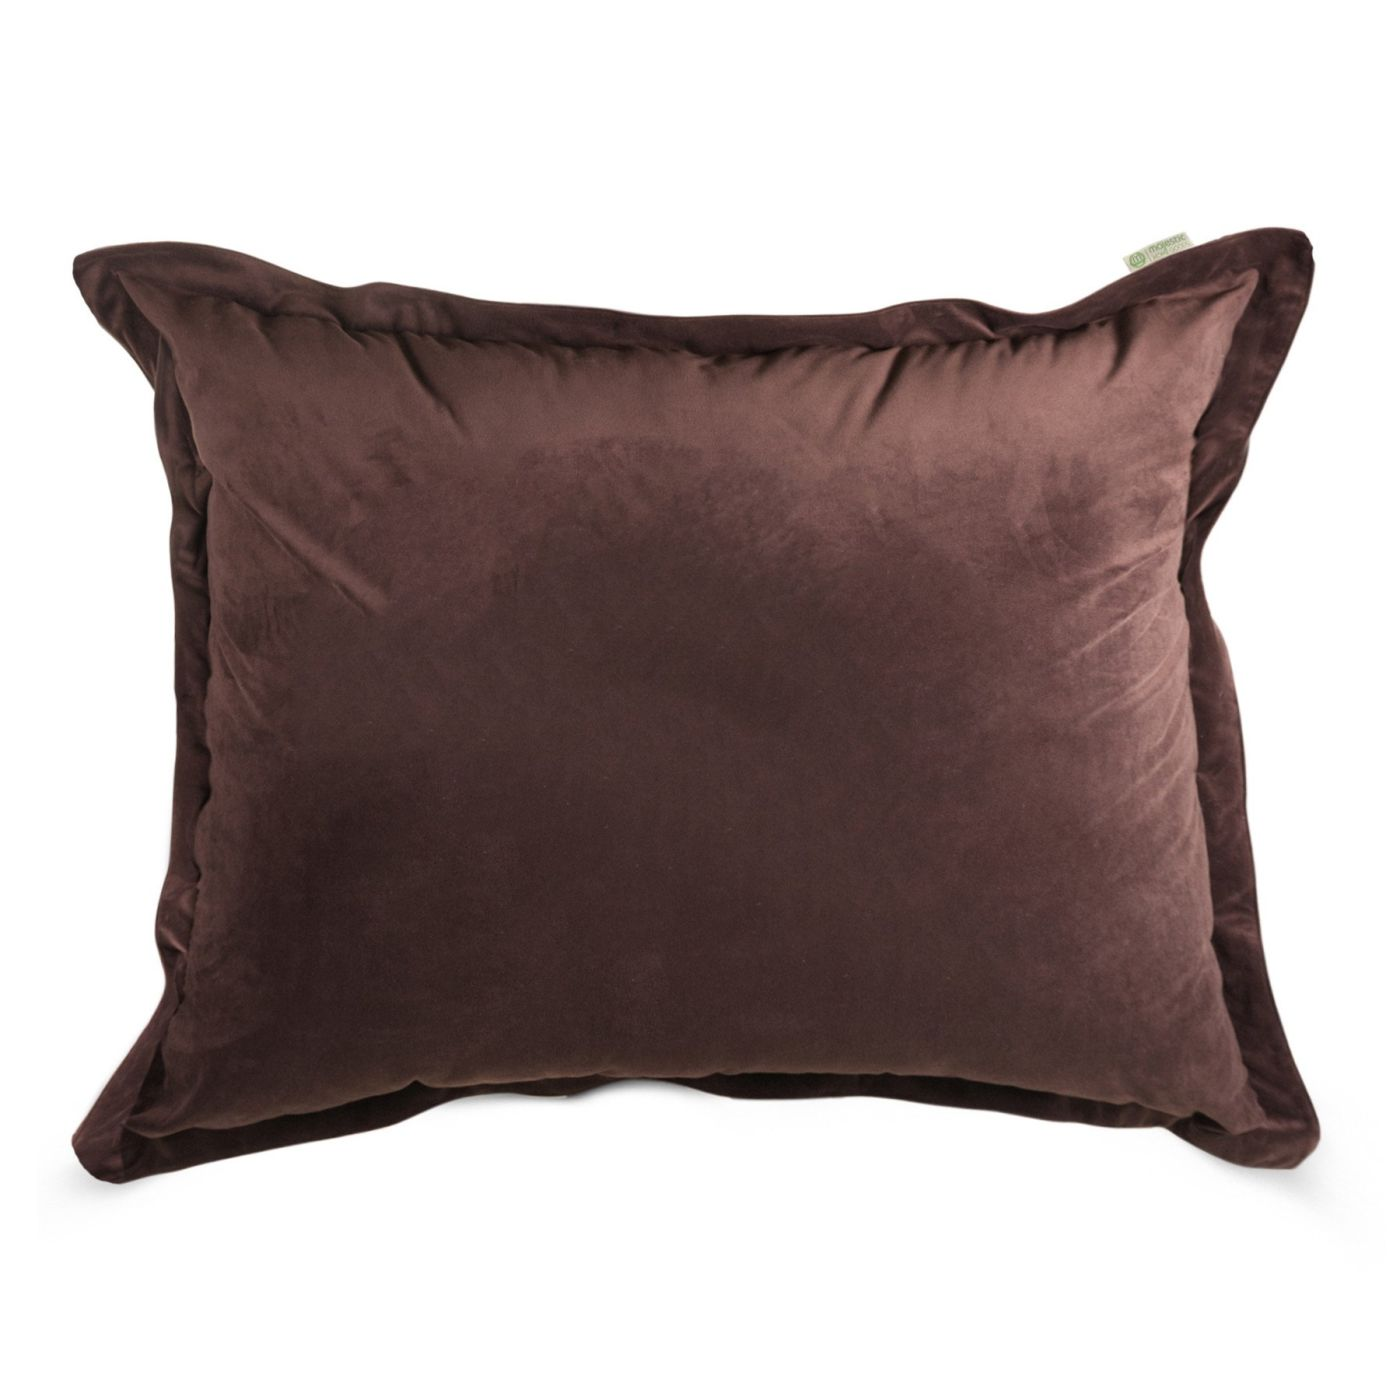 Hipcycle Floor Pillows : Majestic Home Dark Brown Micro-velvet Floor Pillow 85907266007. Only $147.40 at Contemporary ...